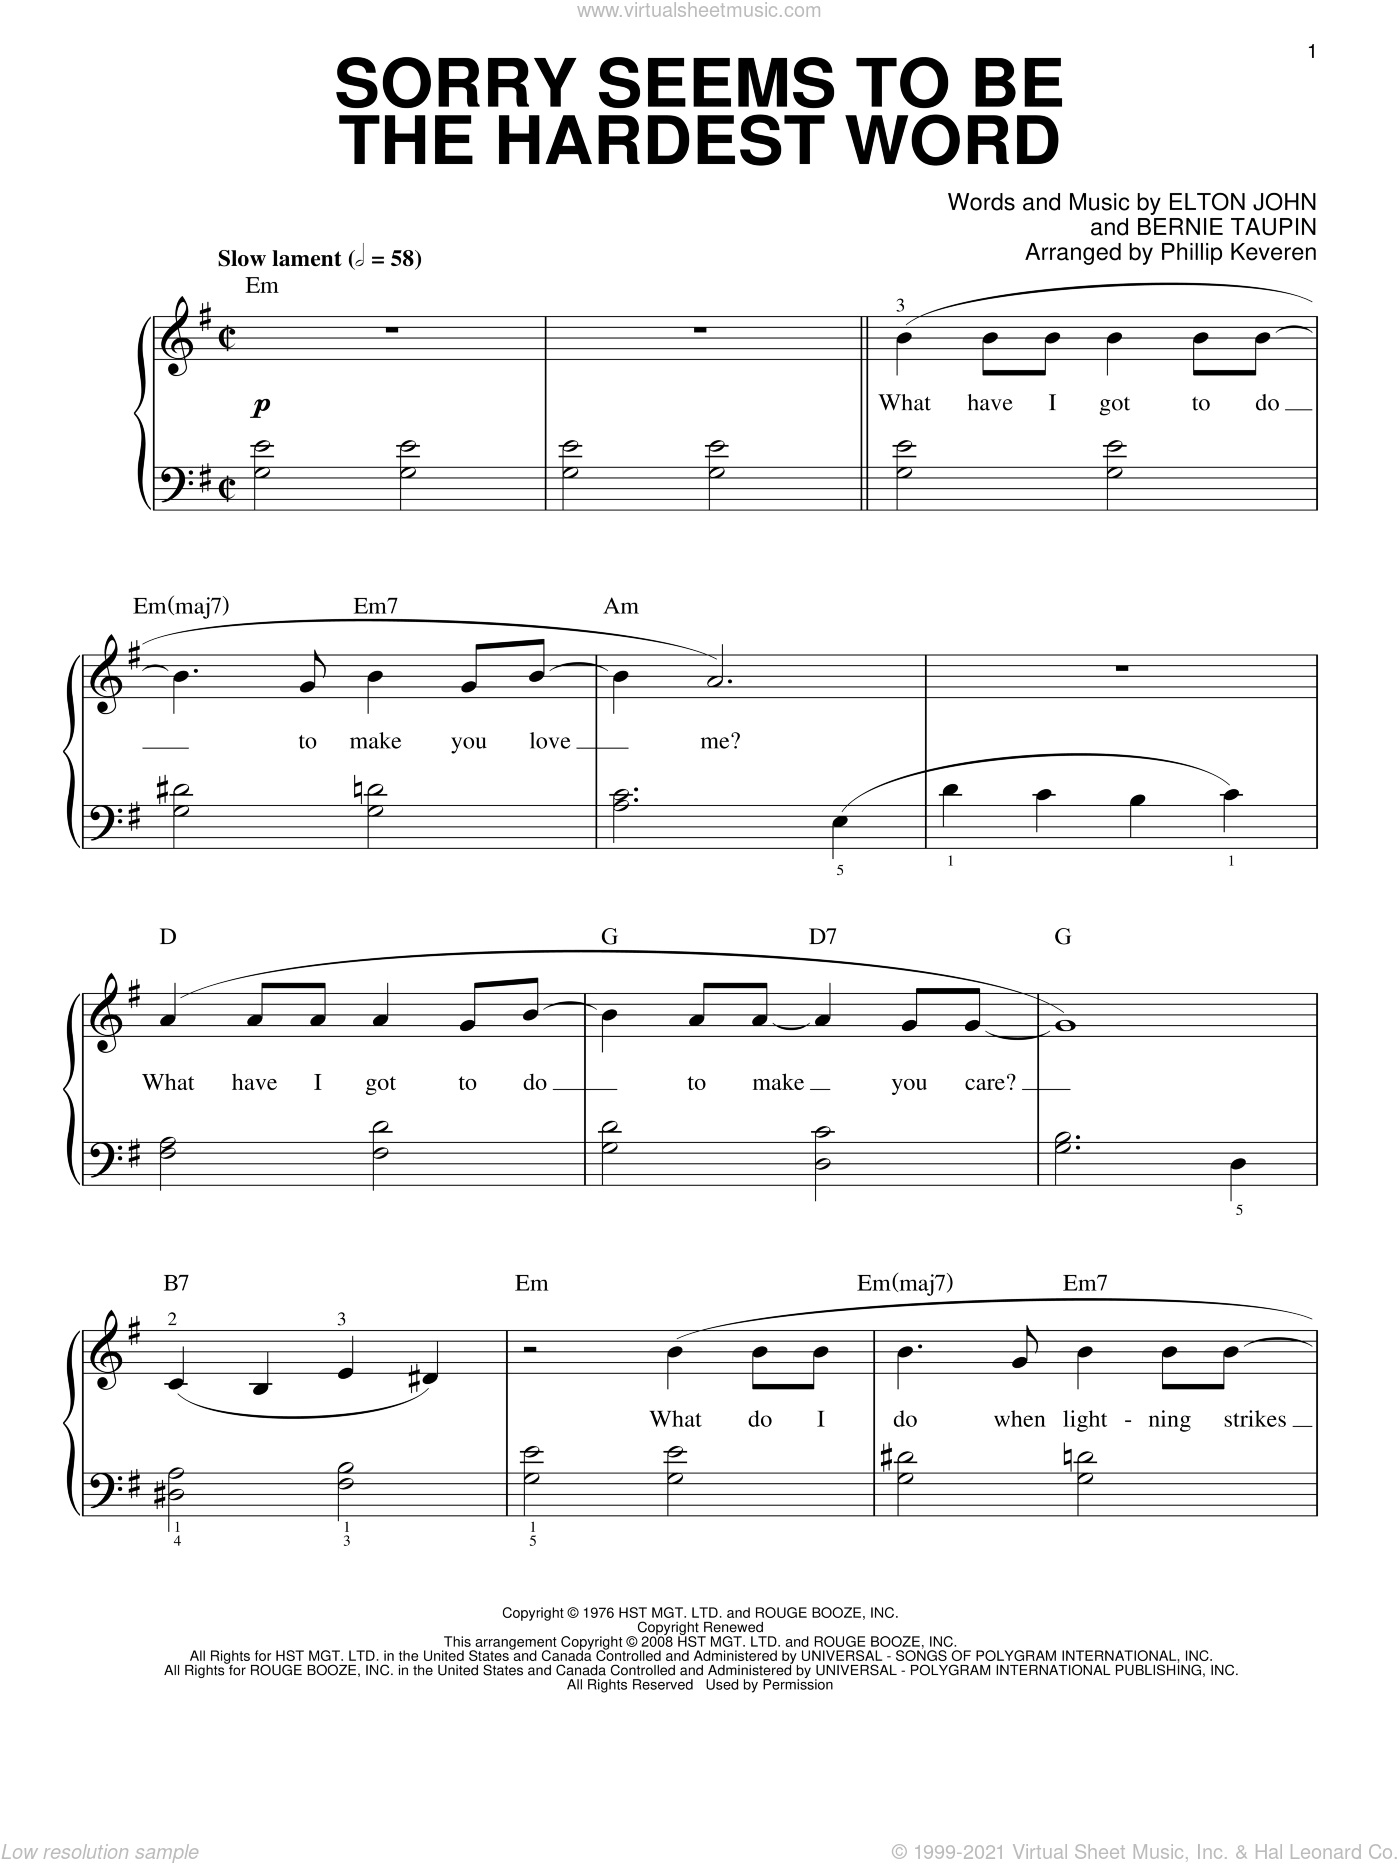 Sorry Seems To Be The Hardest Word sheet music for piano solo by Bernie Taupin